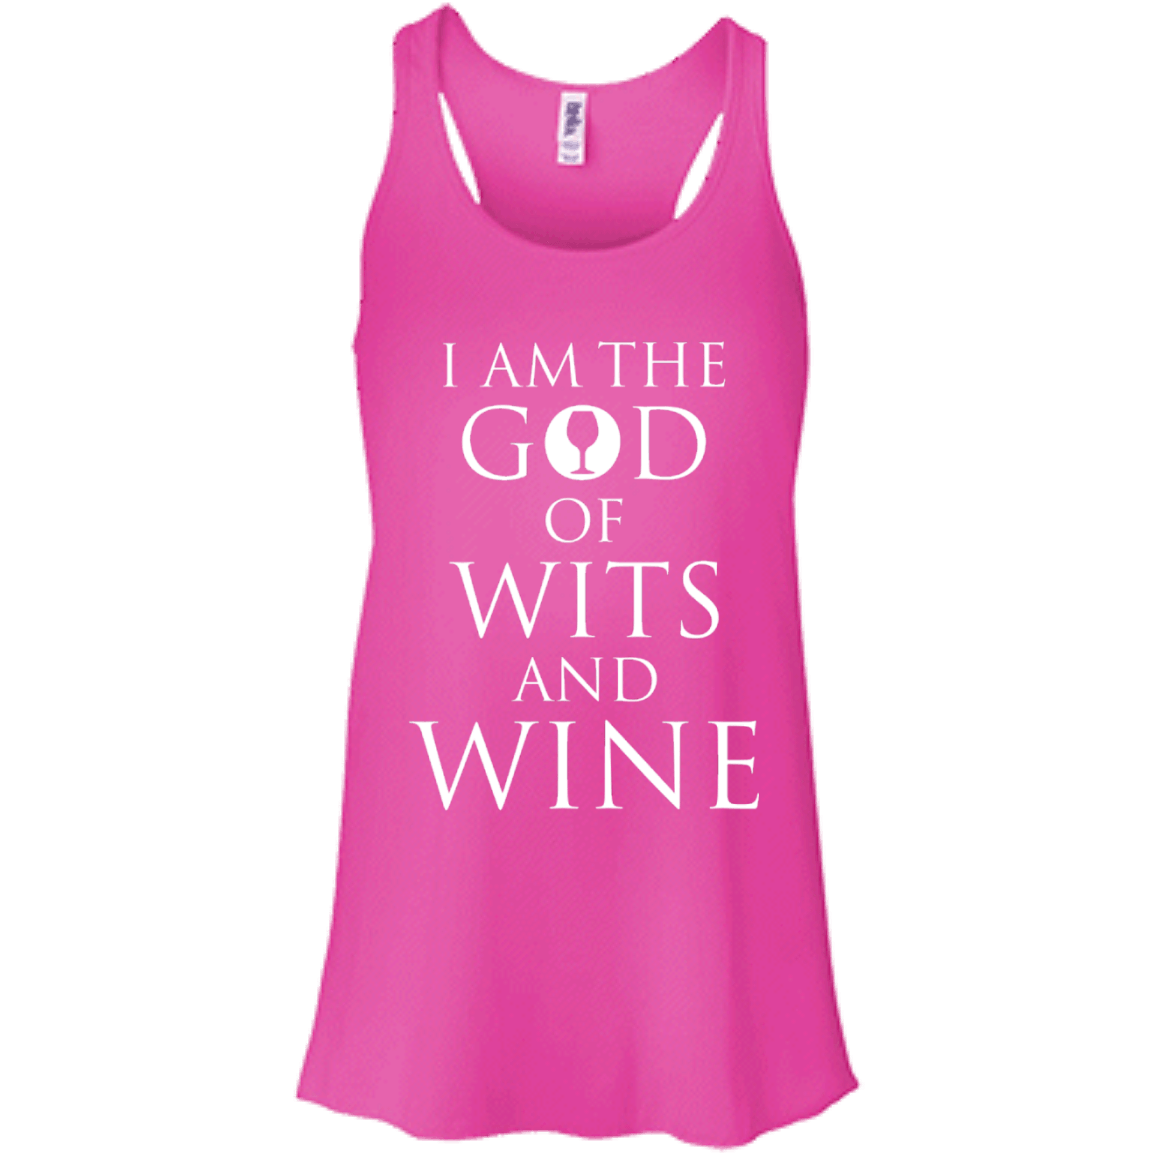 God of Wits and Wine